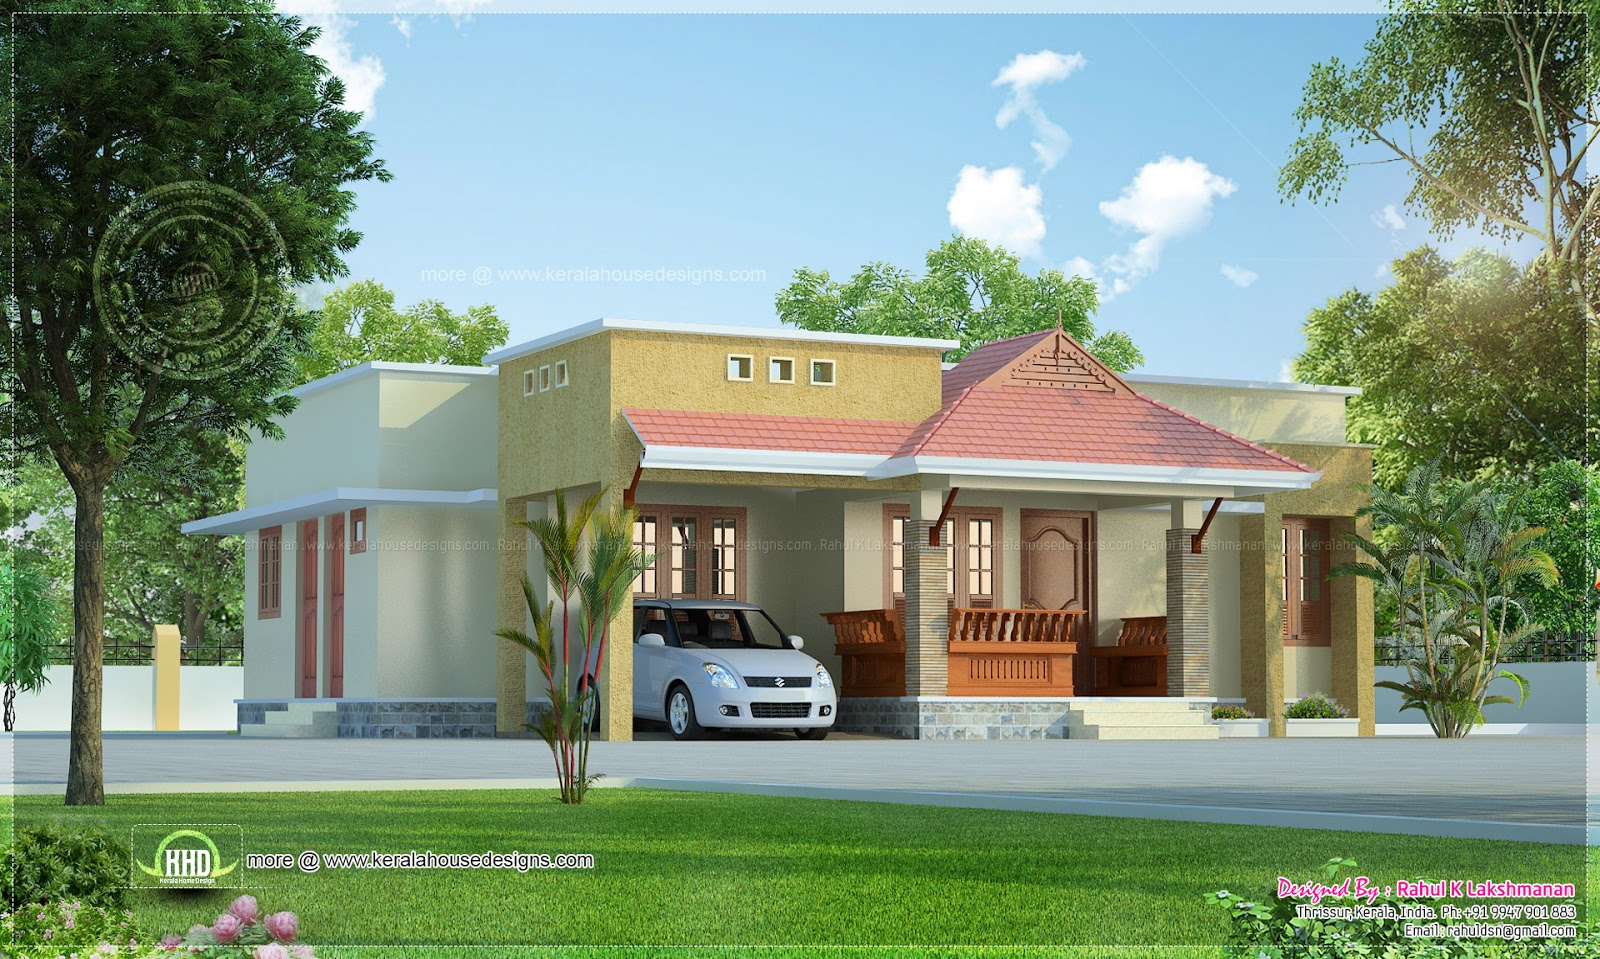 Simple and low budget house plans home design elements for Small budget house plans in kerala